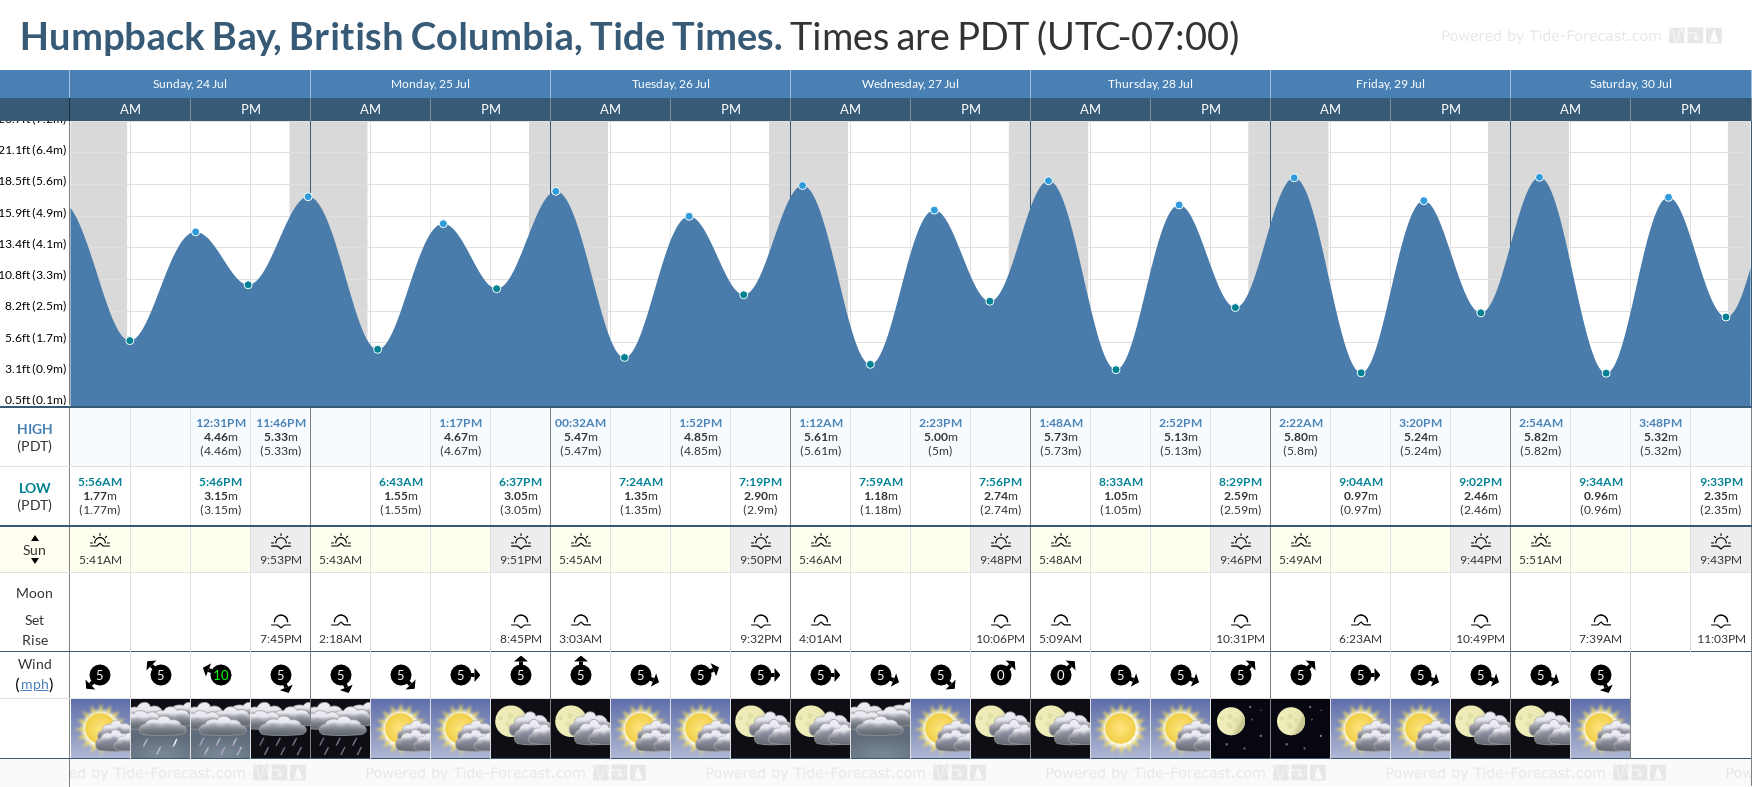 Humpback Bay, British Columbia Tide Chart including high and low tide tide times for the next 7 days